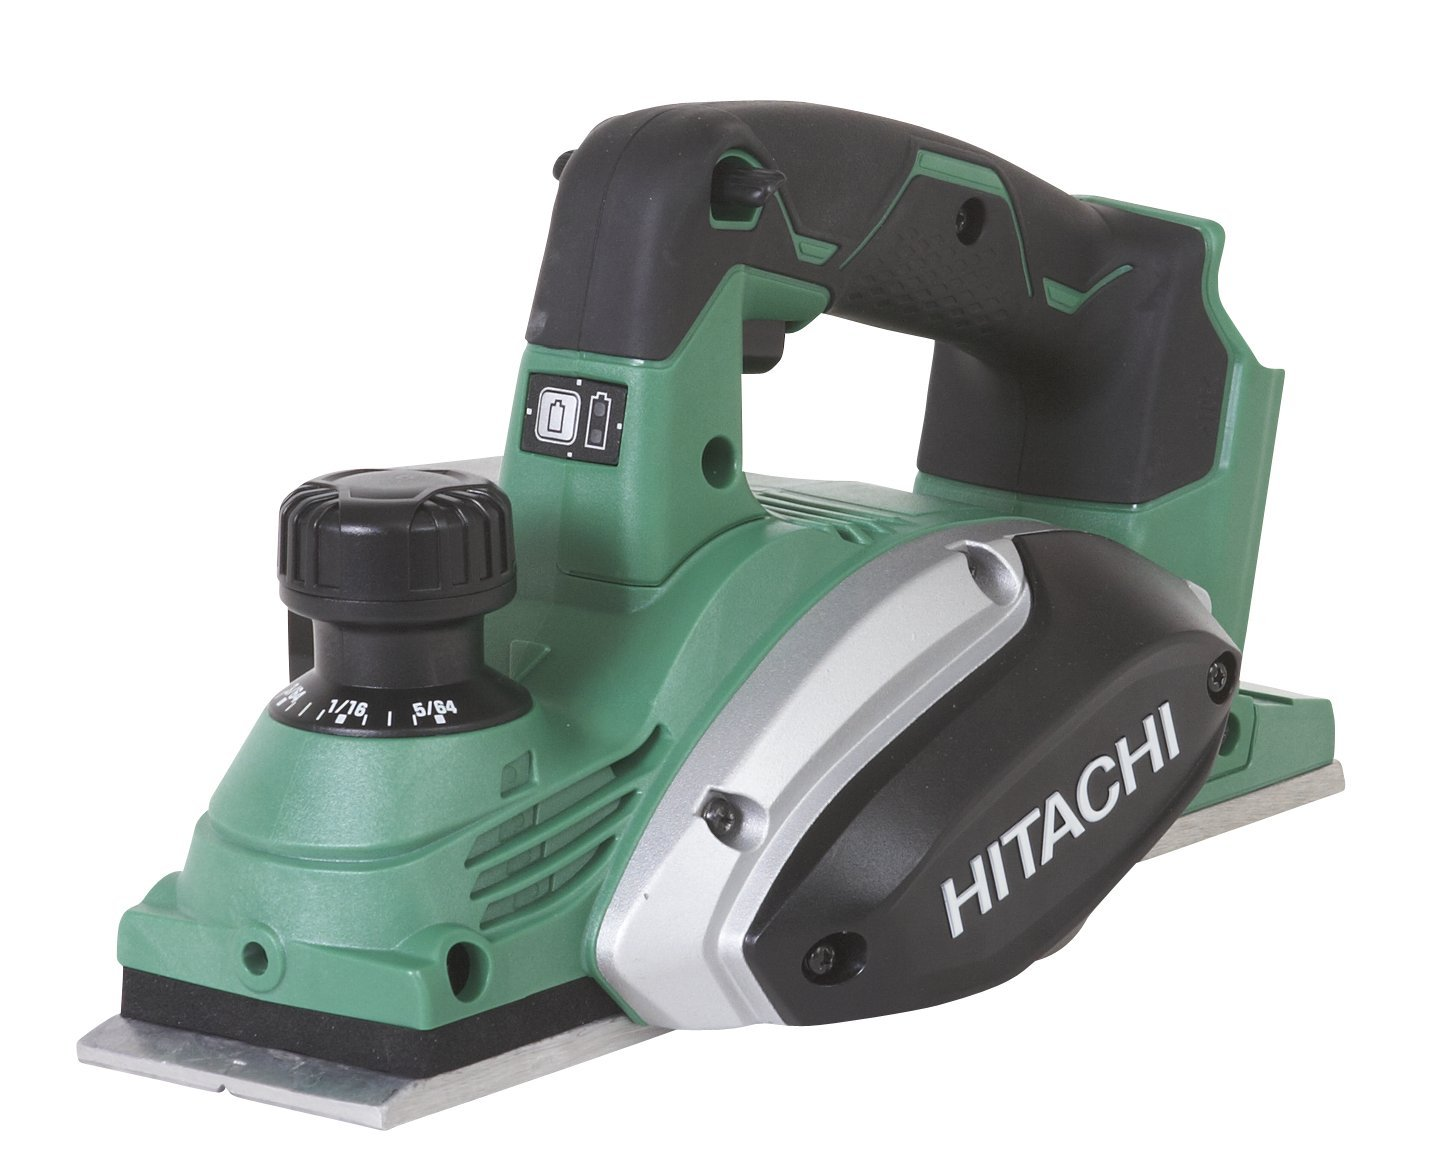 Hitachi P18DSLP4 18-Volt Cordless Lithium-Ion 3-1/4-Inch Handheld Planer with Lifetime Tool Warranty (Tool Only, No Battery)